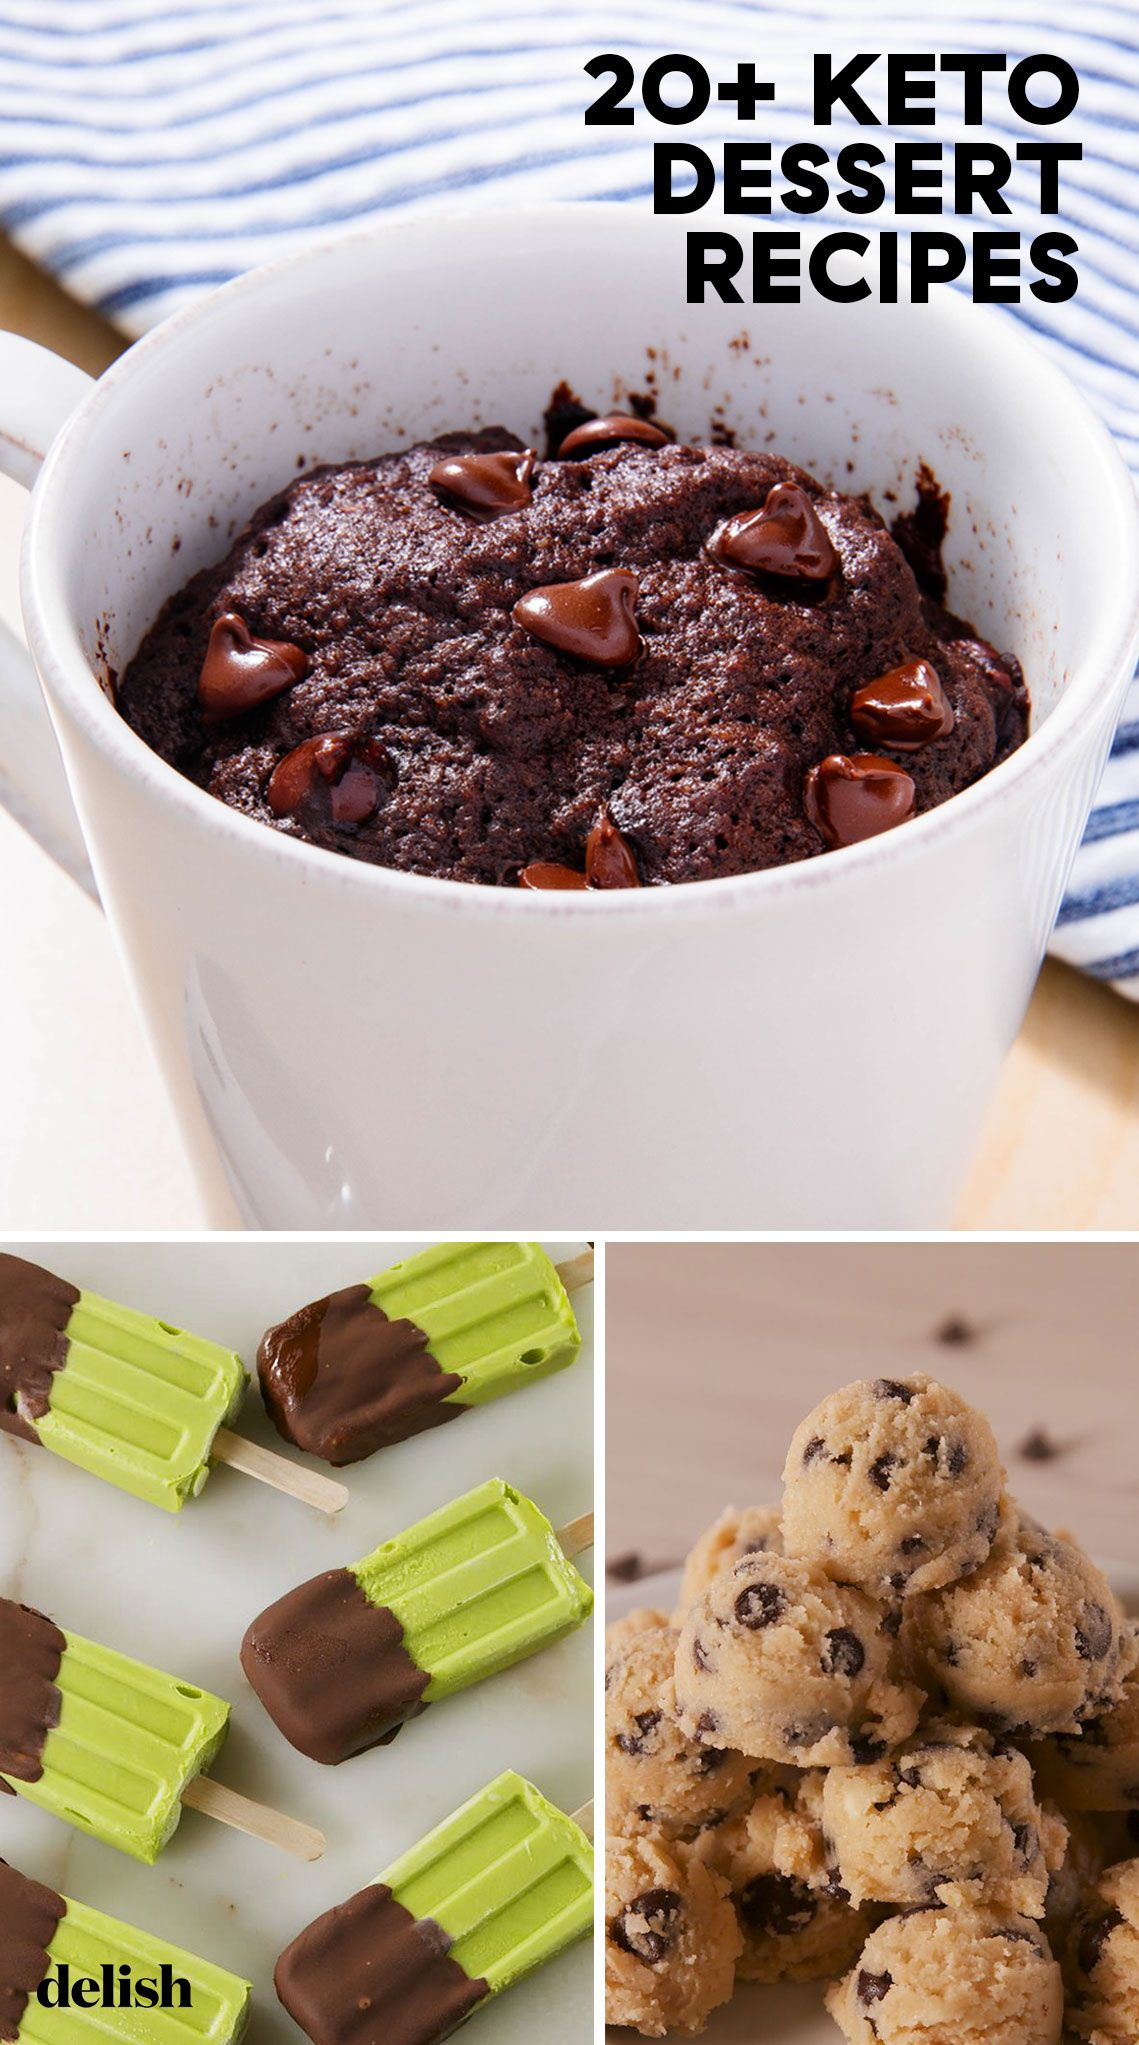 Keto Sweets Keto-Friendly Dessert Recipes Images Download